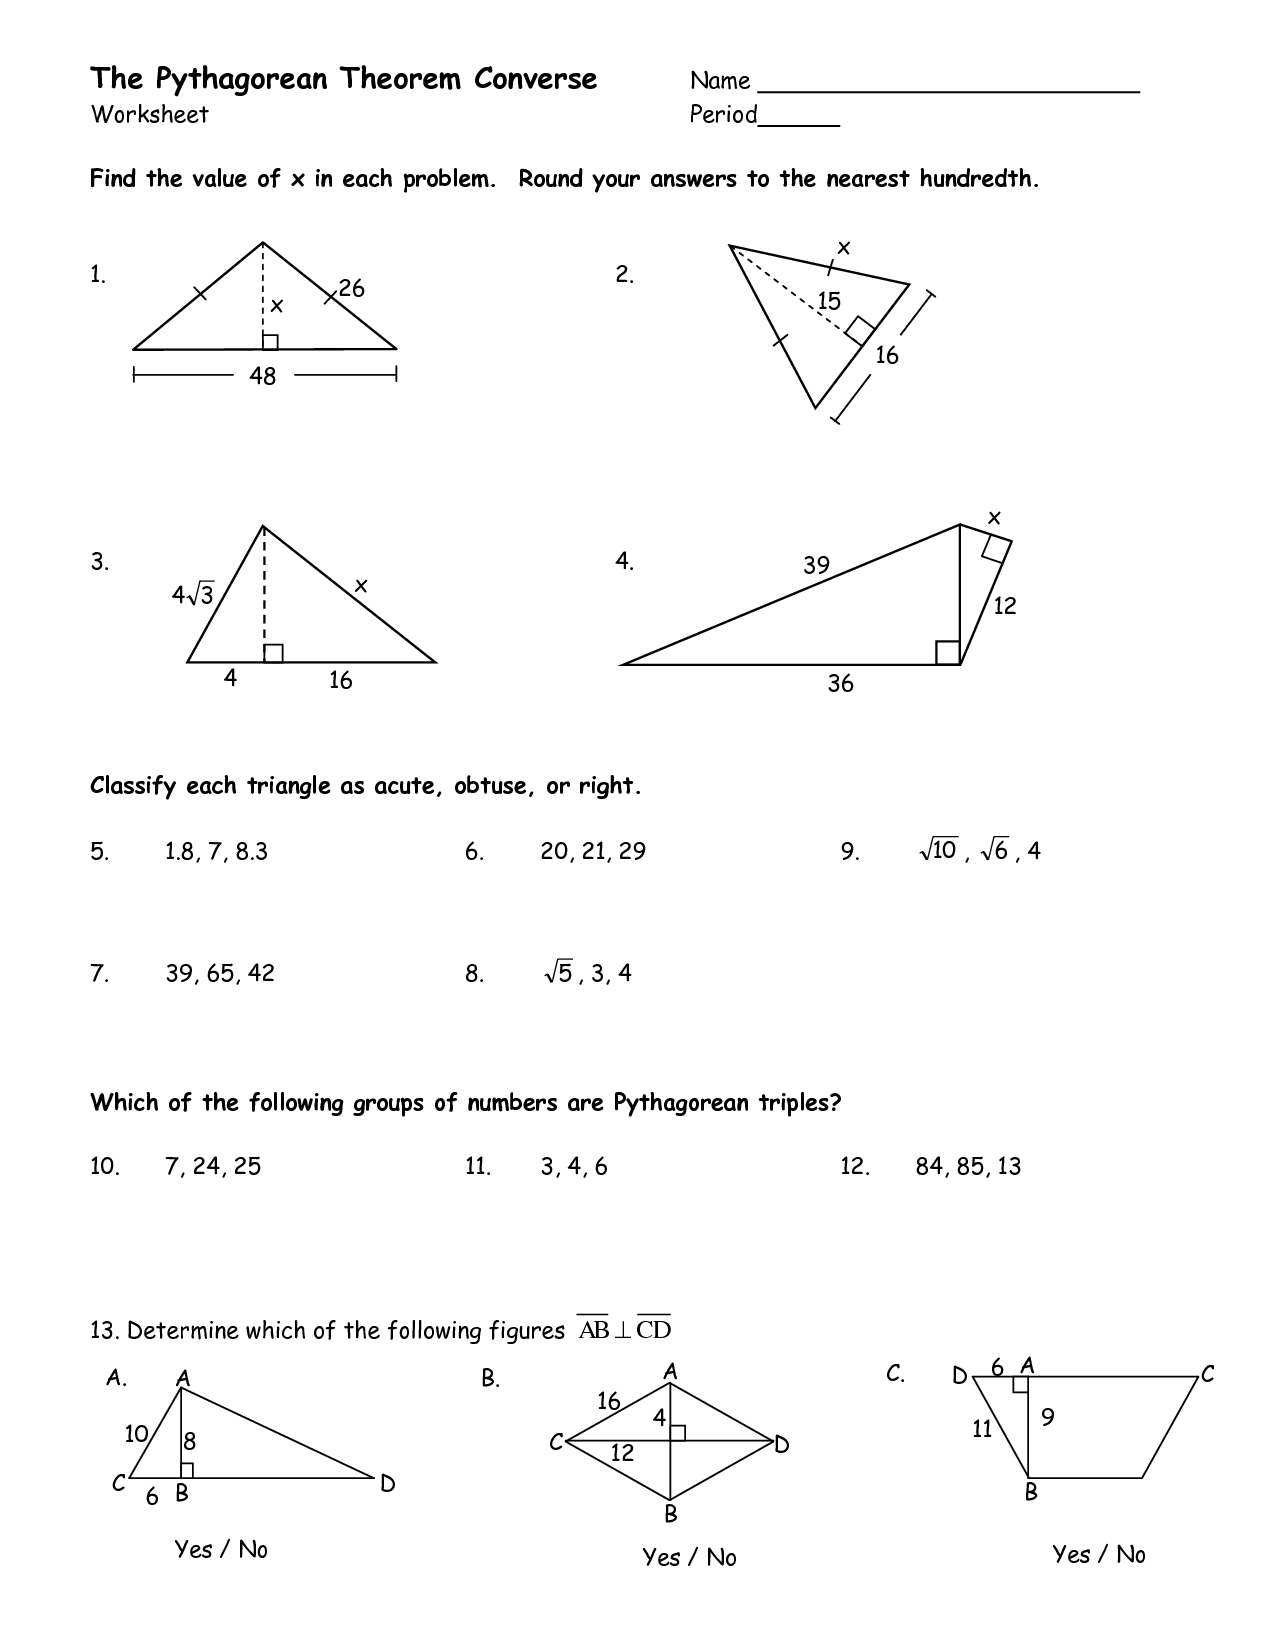 worksheet Pythagorean Theorem Puzzle Worksheet theorem worksheet doc phoenixpayday com pythagorean com